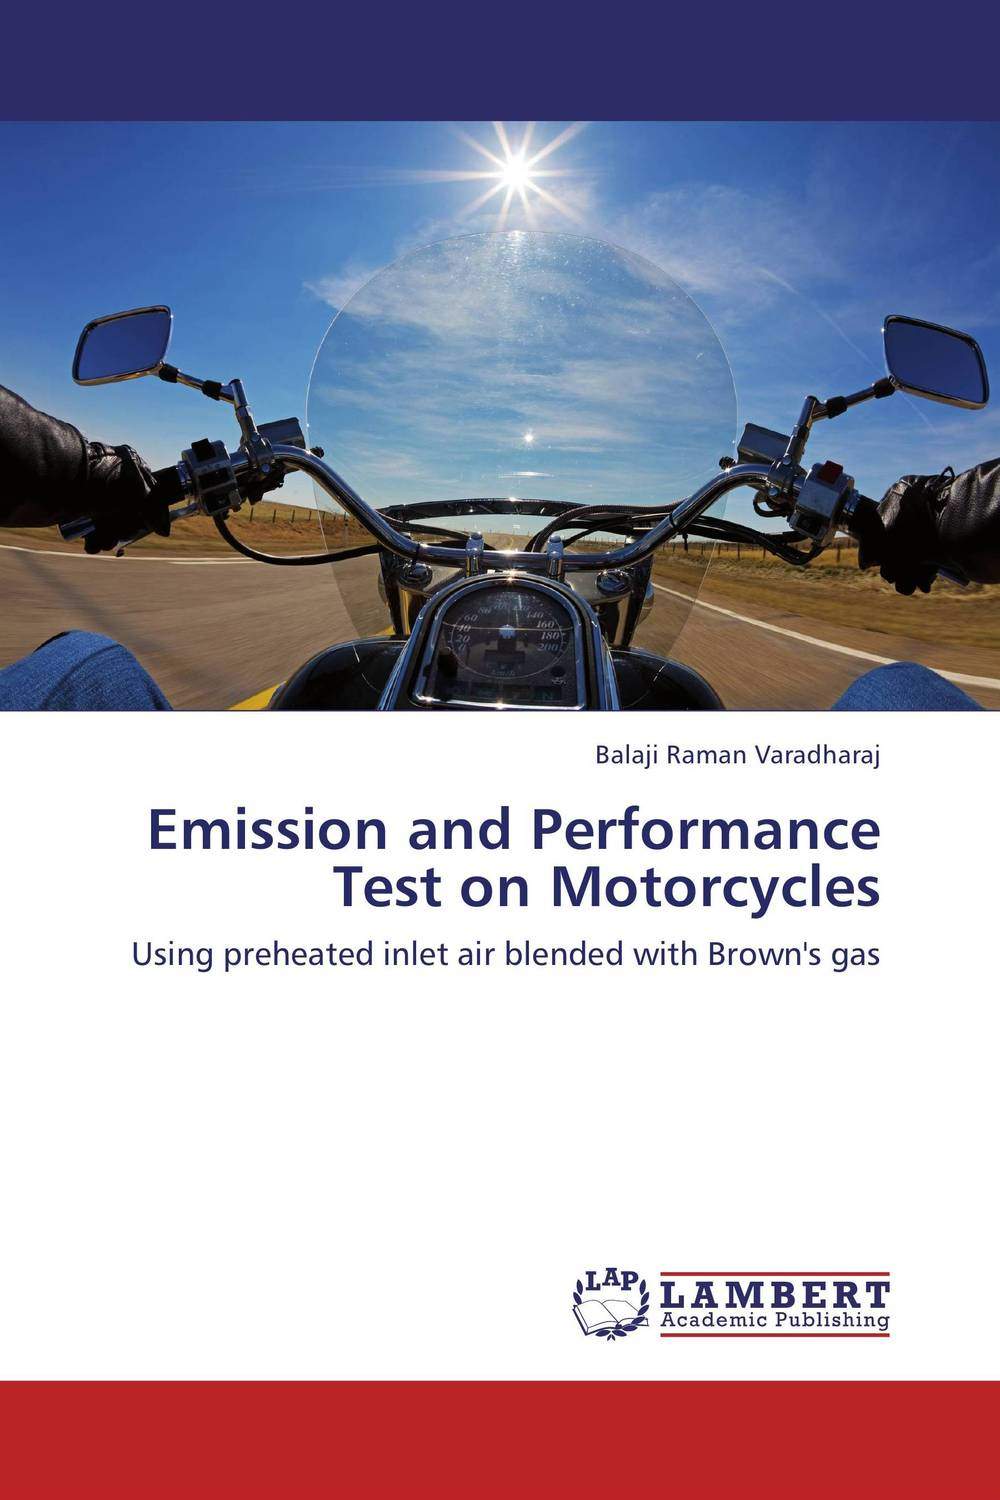 Emission and Performance Test on Motorcycles